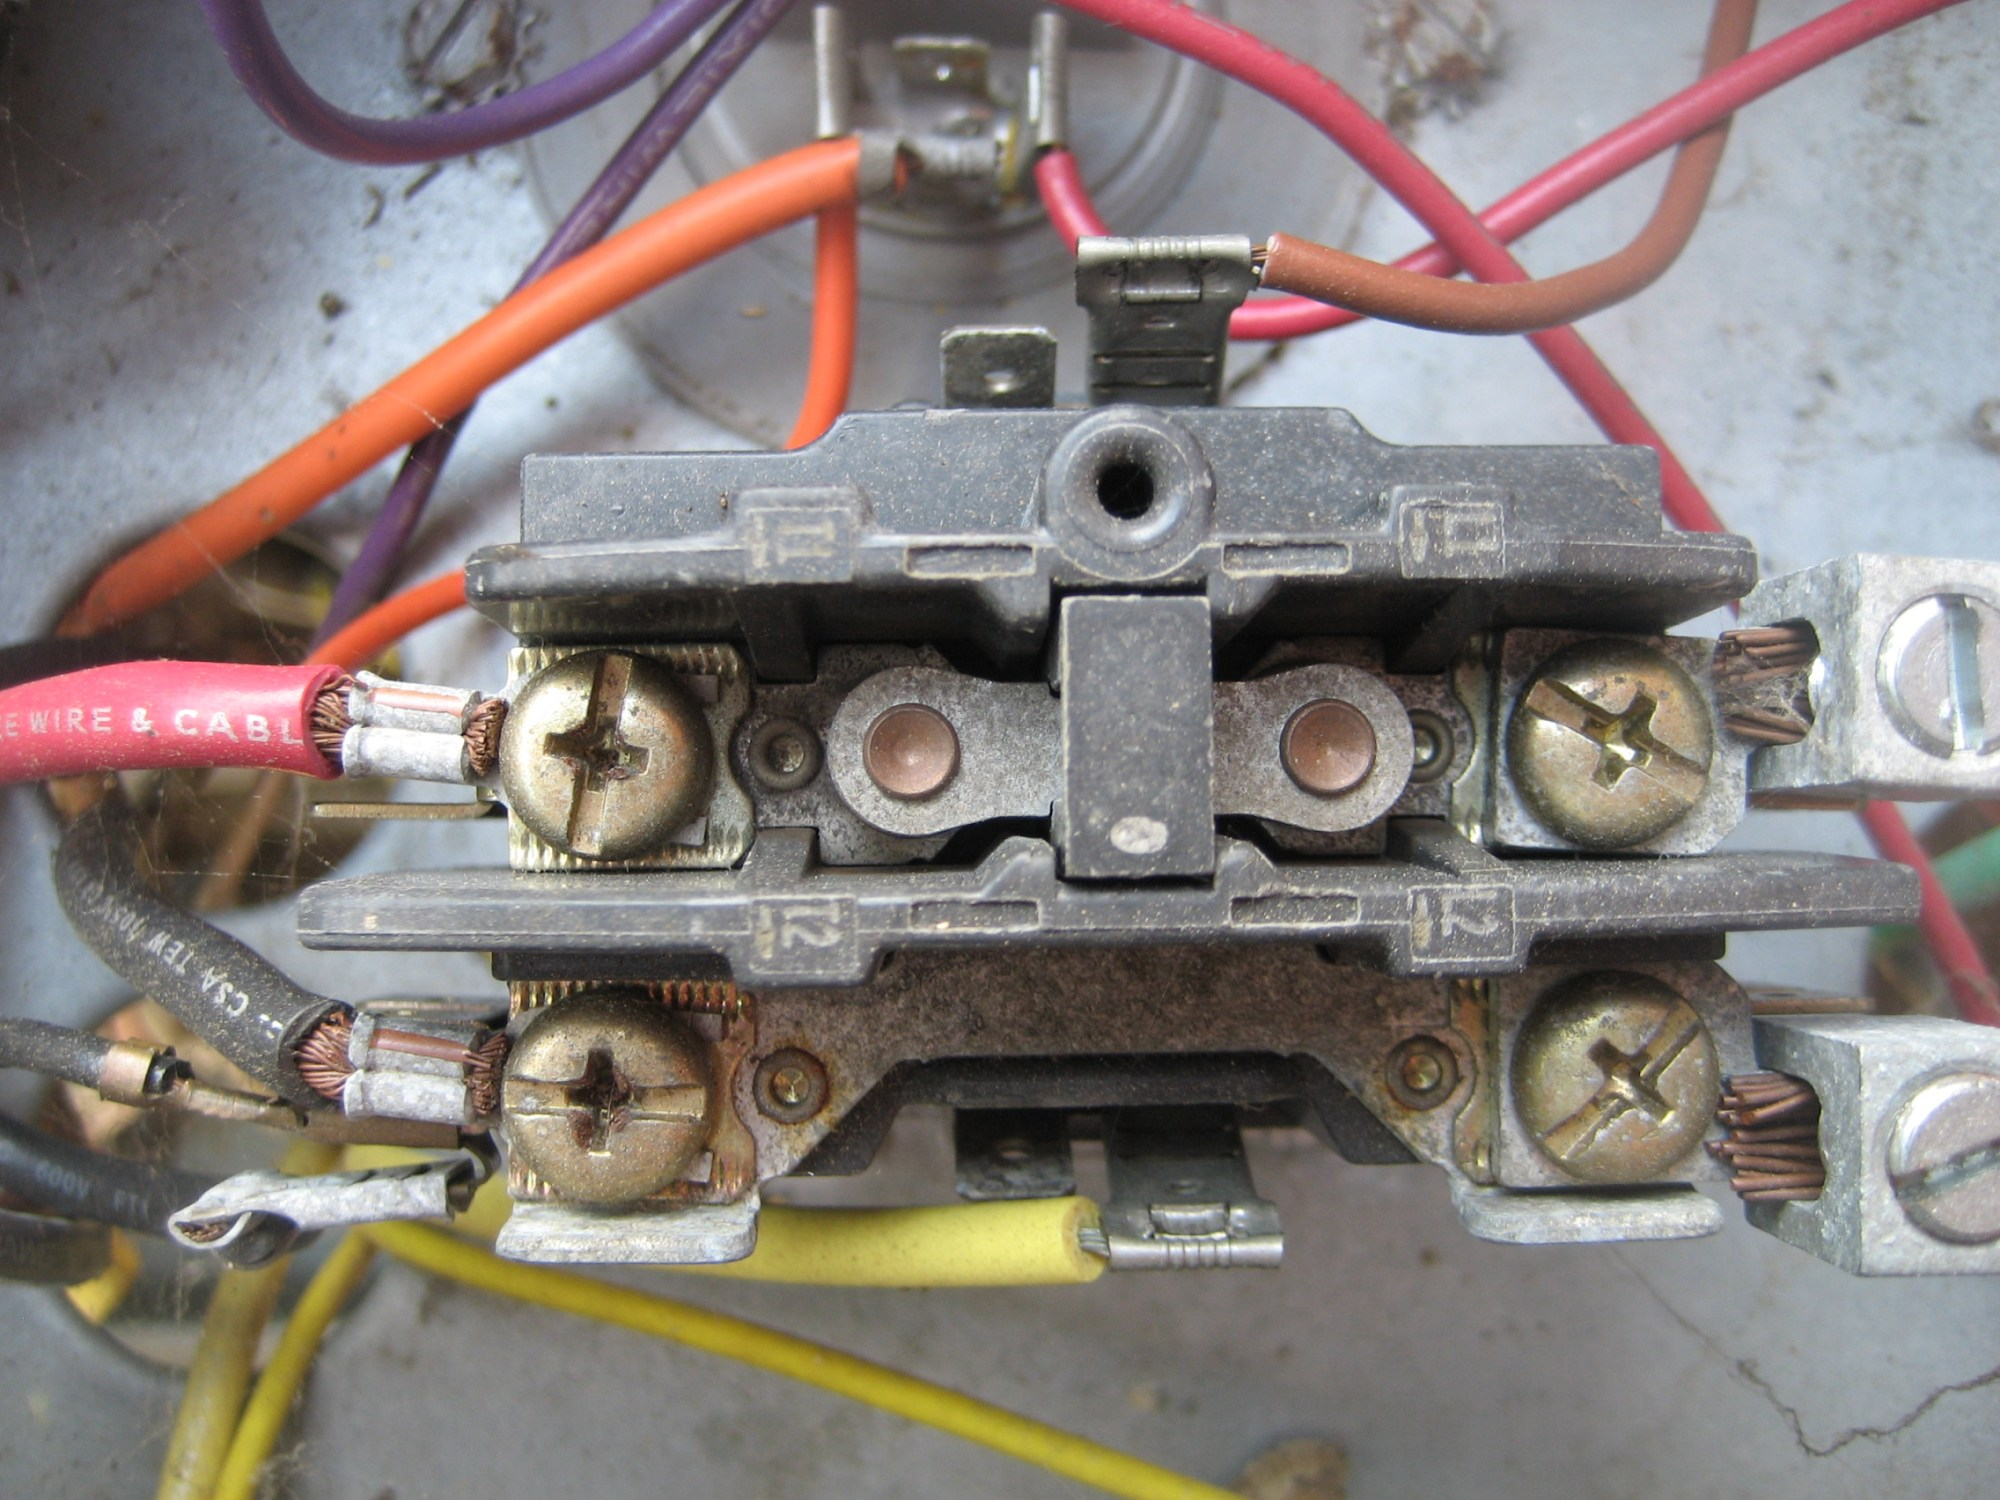 hight resolution of our home ruud central ac unit stopped working yesterday ruud compressor wiring diagram dayton contactor wiring diagram